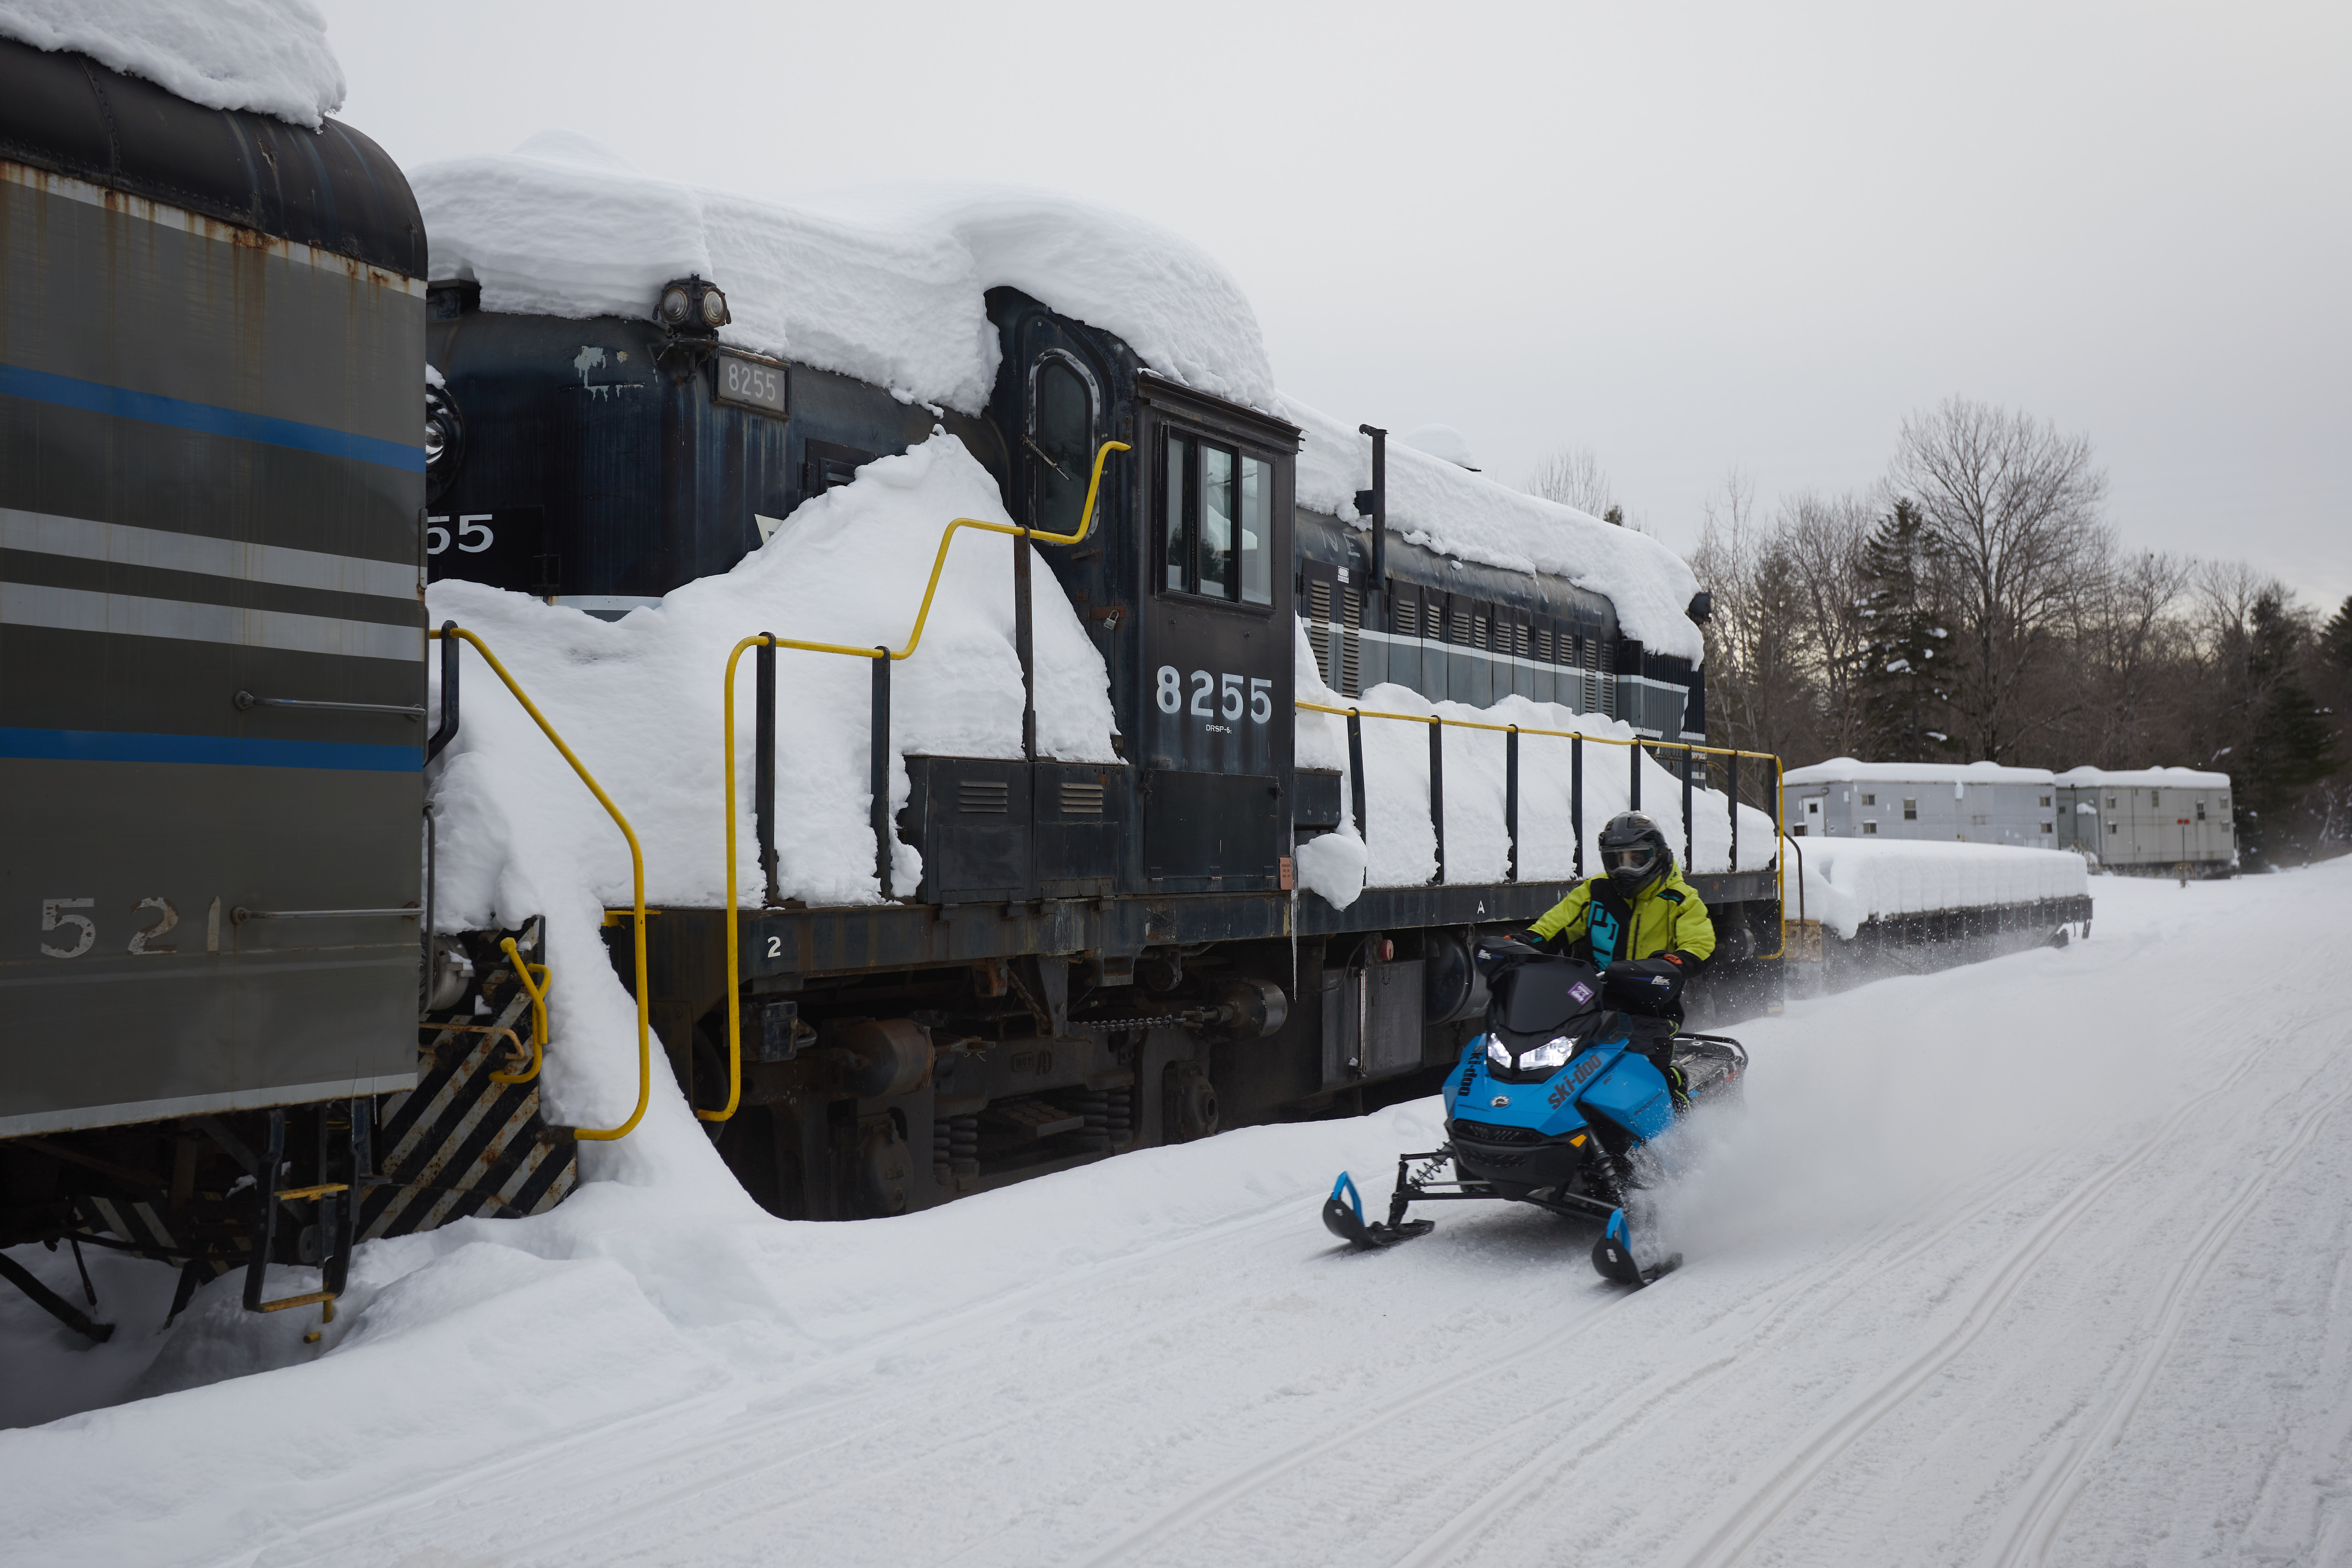 Snowmobiler speeding through train yards.